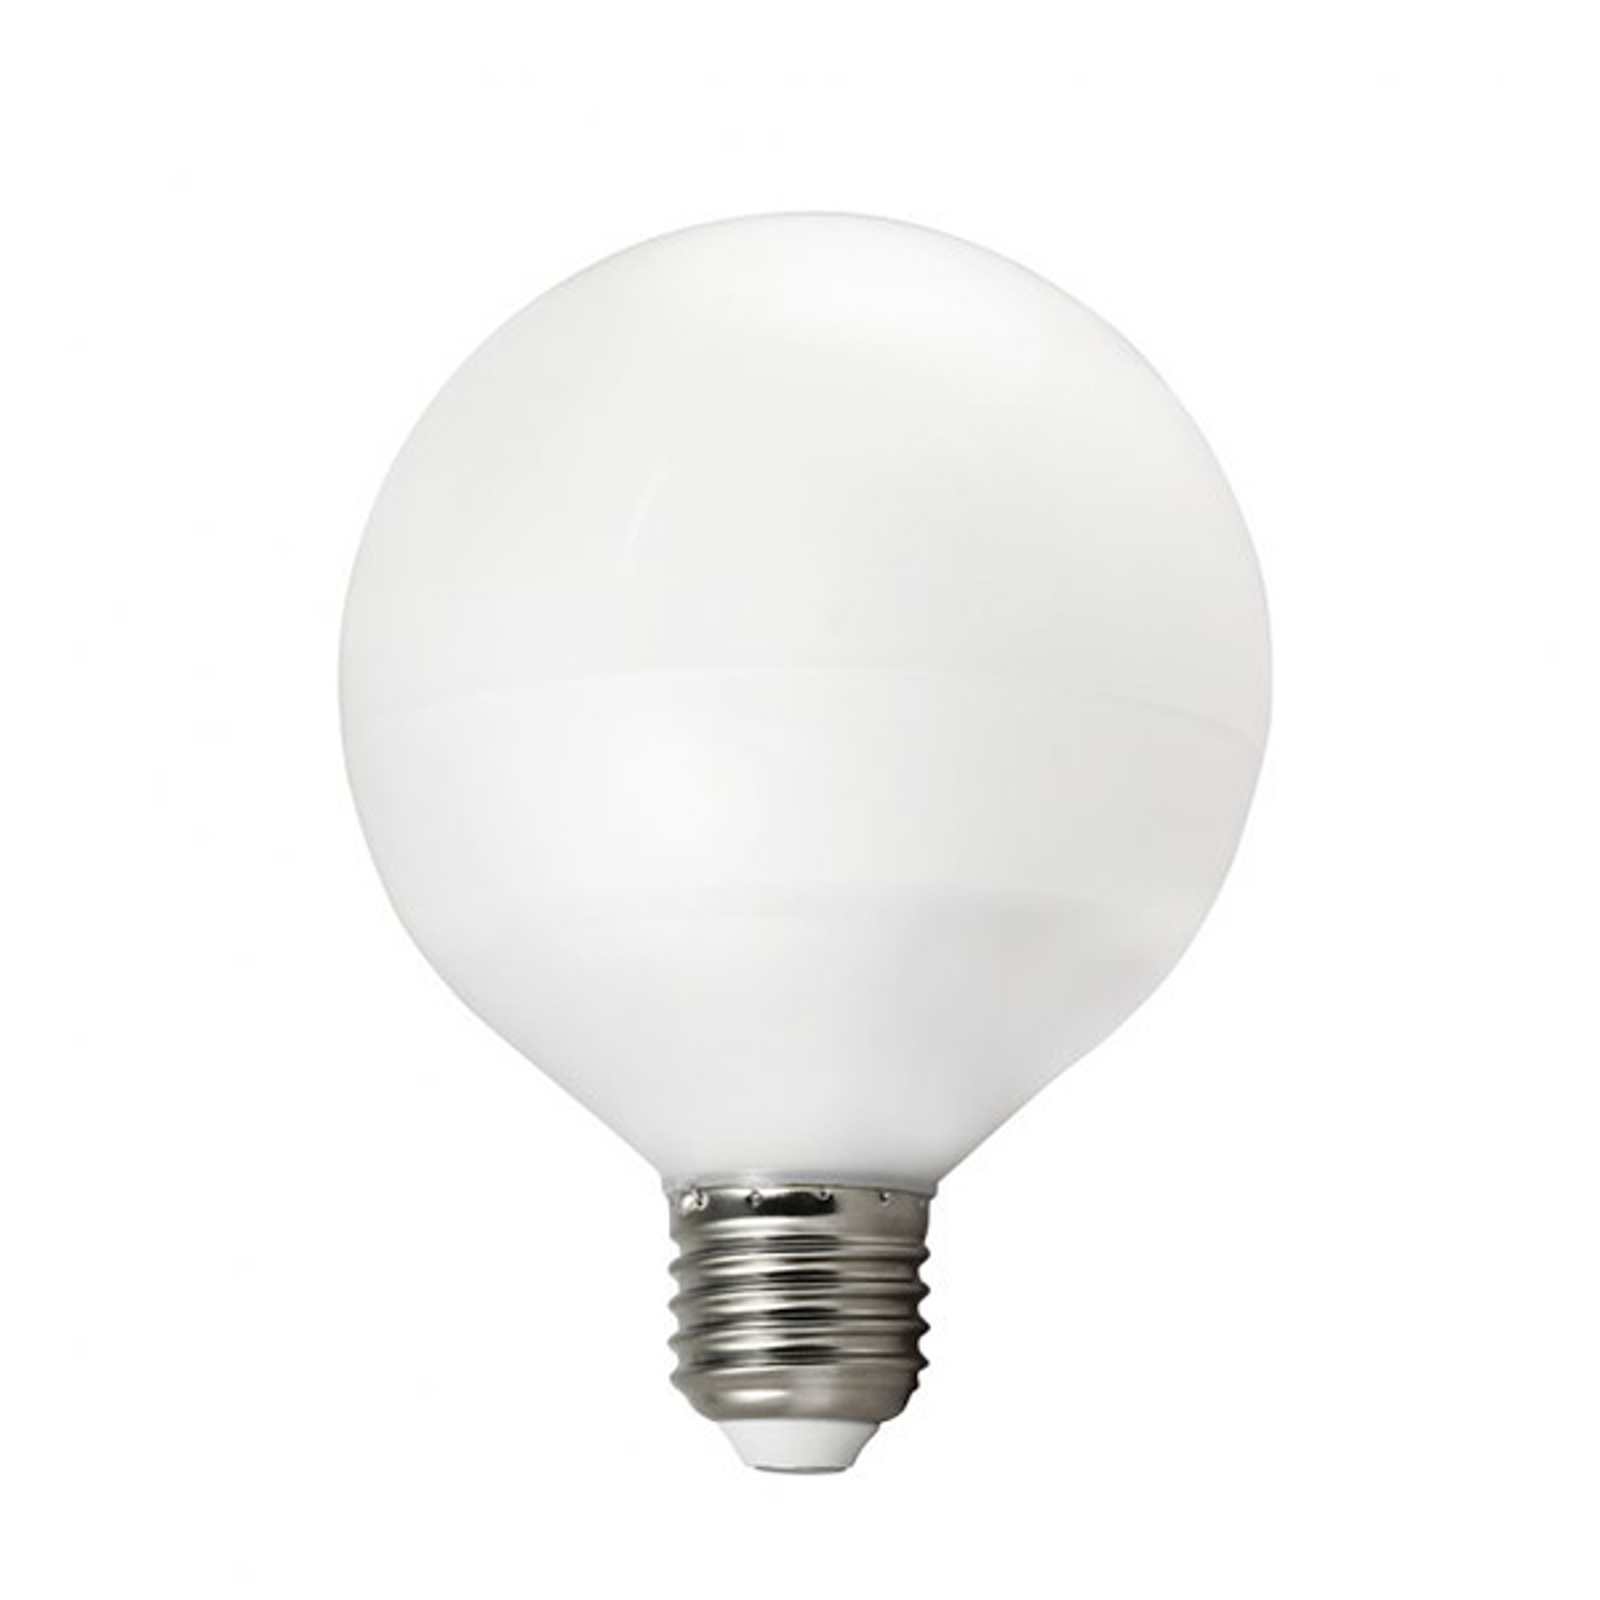 E27 13W 827 Led Globelamp warmwit